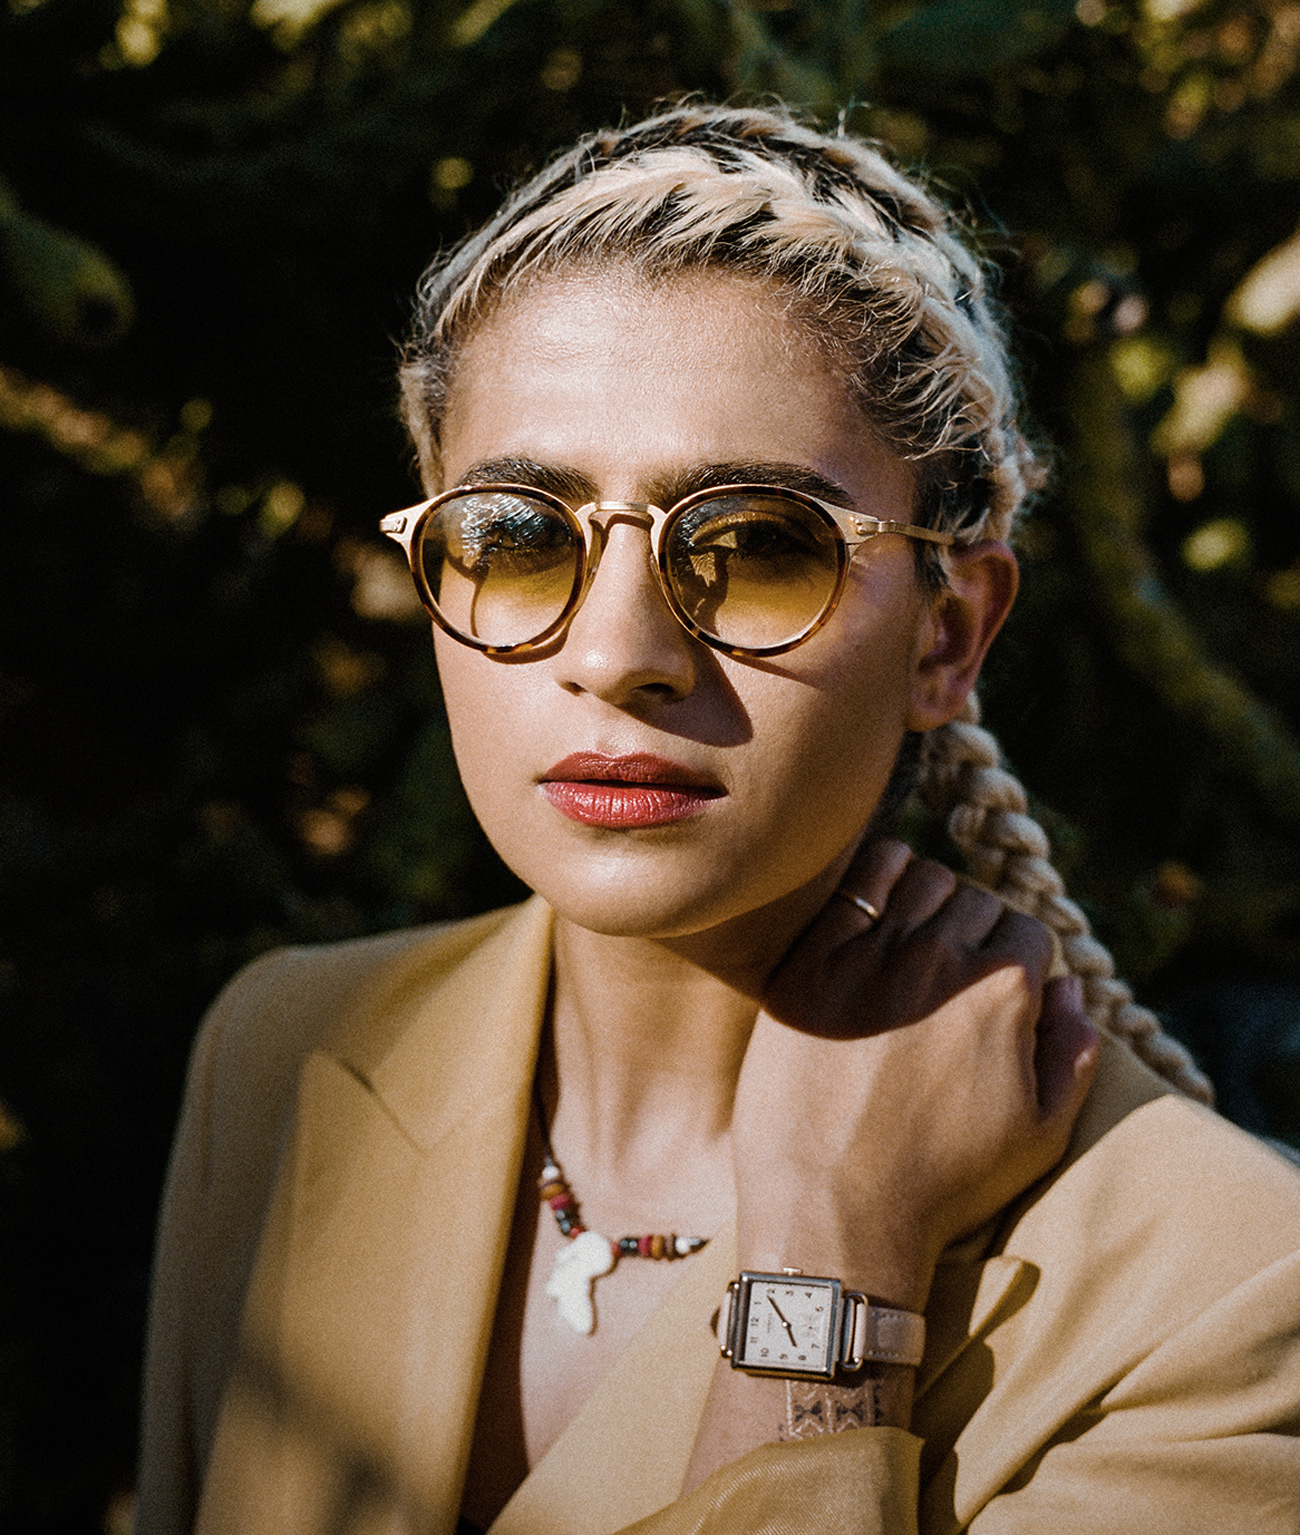 Girlgaze teamed up with Detroit based Shinola to highlight five Girls With Purpose.